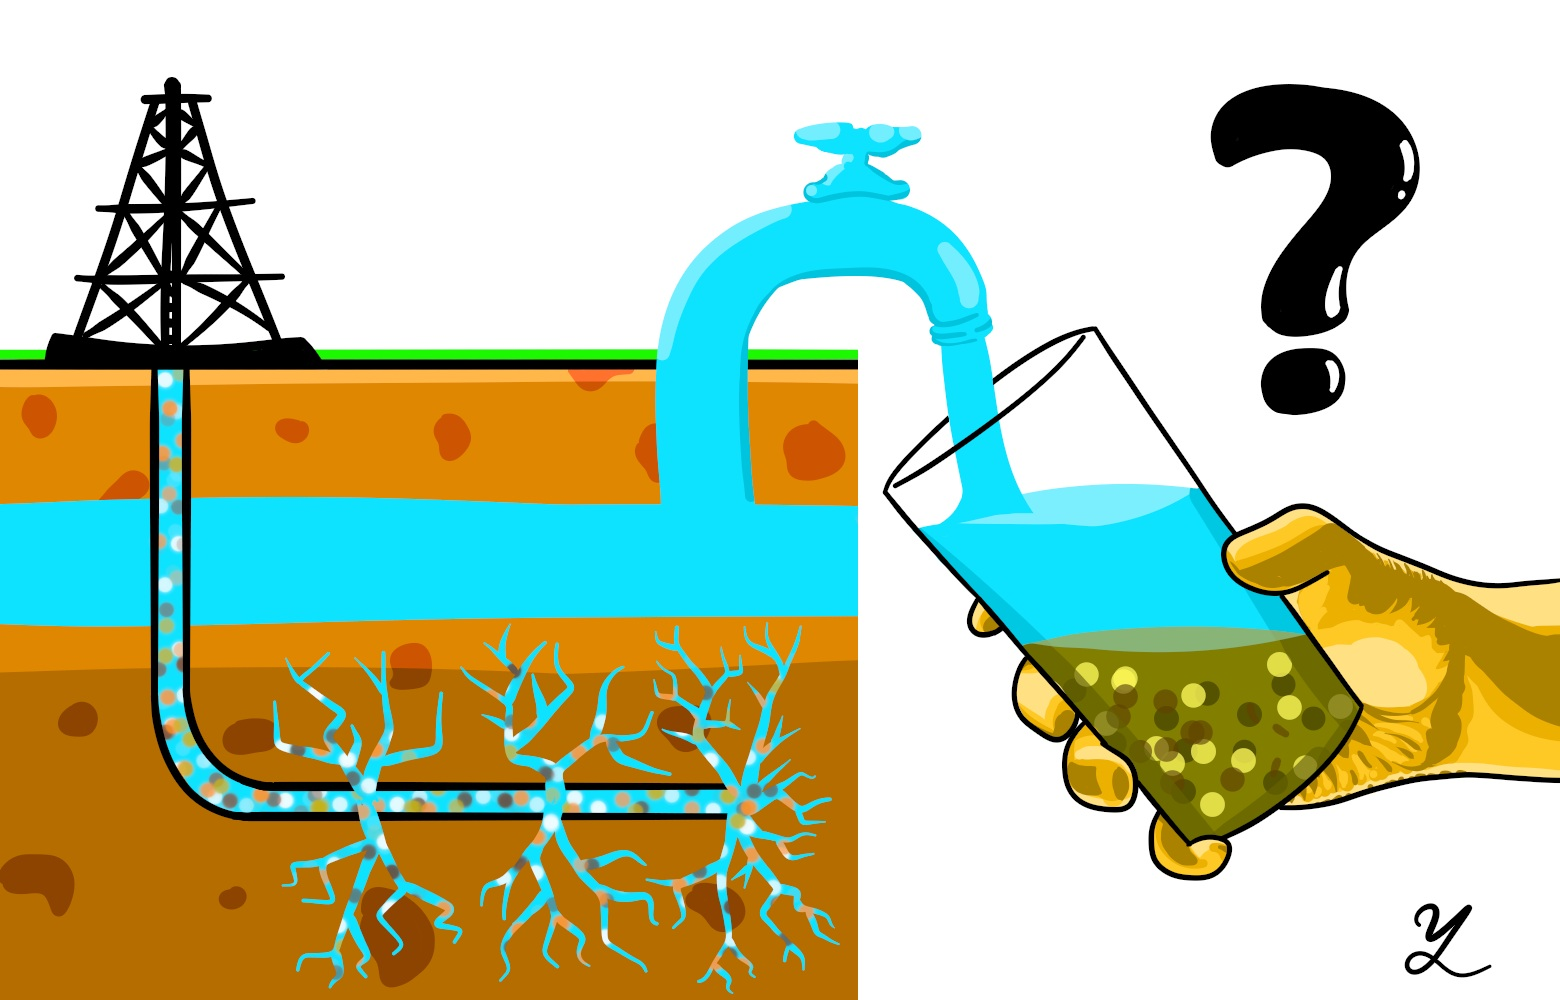 Groundwater pollution clipart graphic royalty free stock Study Links Groundwater Changes to Fracking graphic royalty free stock